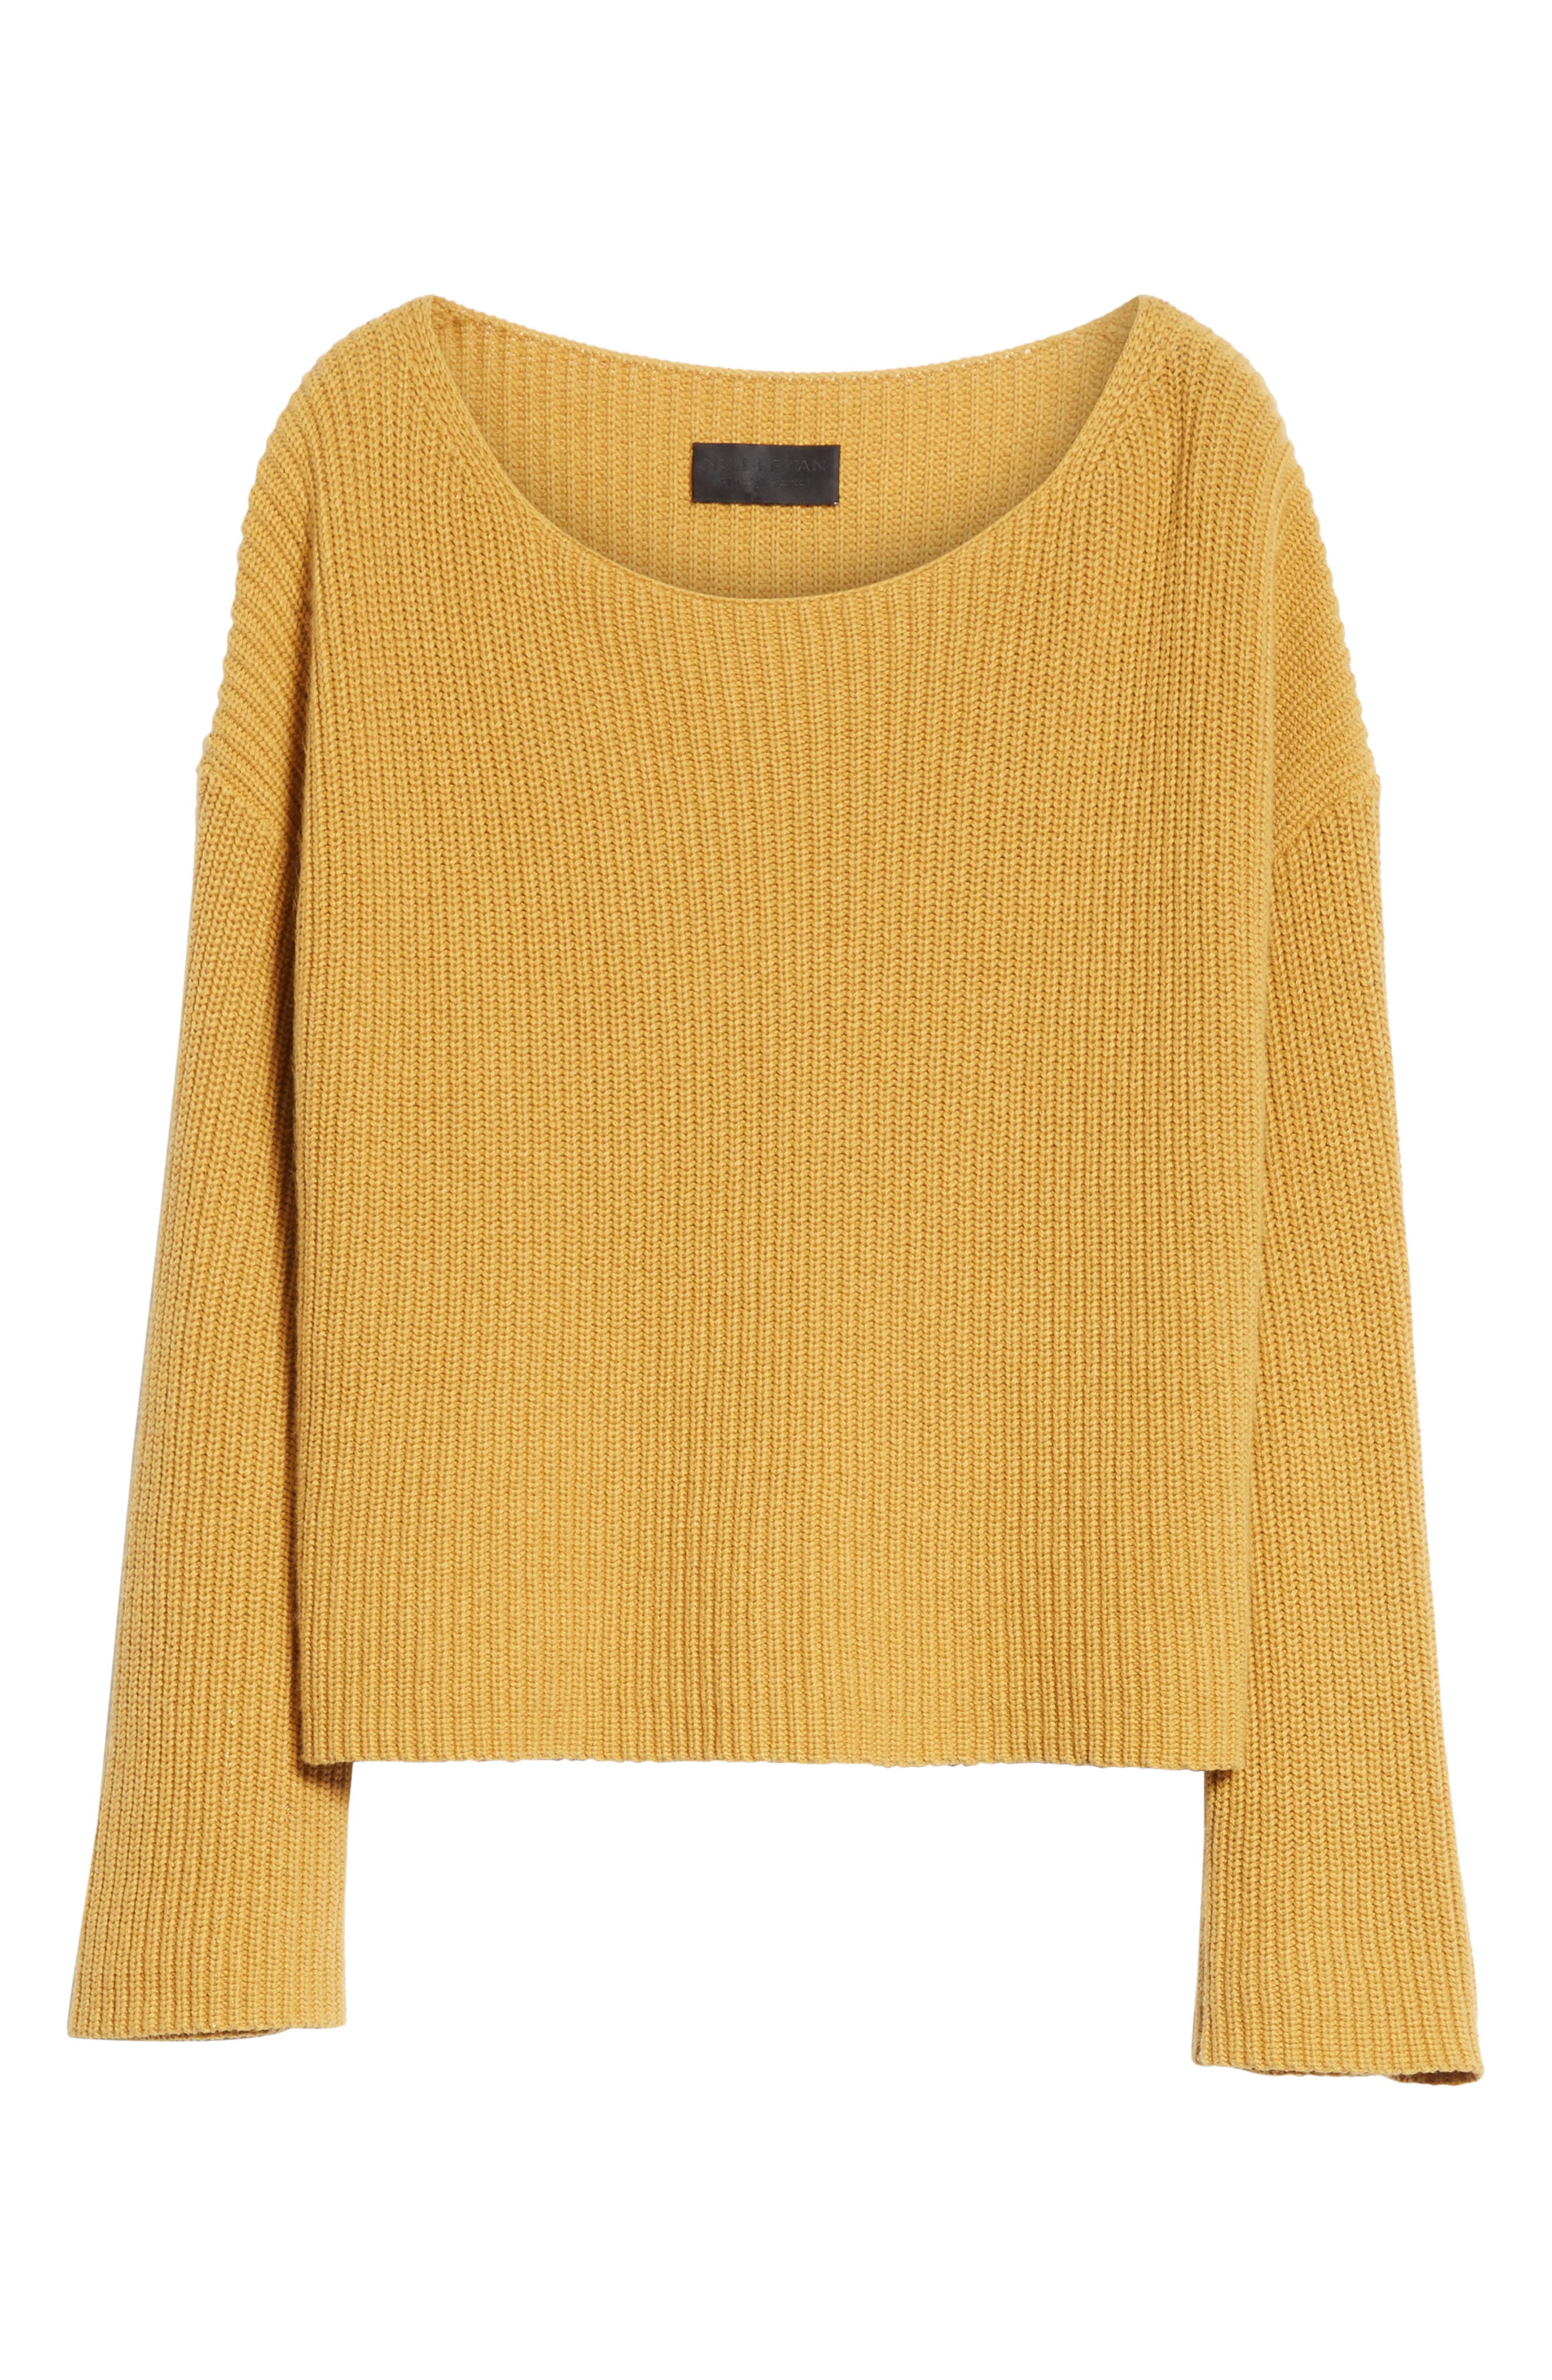 Martindale Ribbed Cotton, Cashmere & Silk Sweater,                             Alternate thumbnail 6, color,